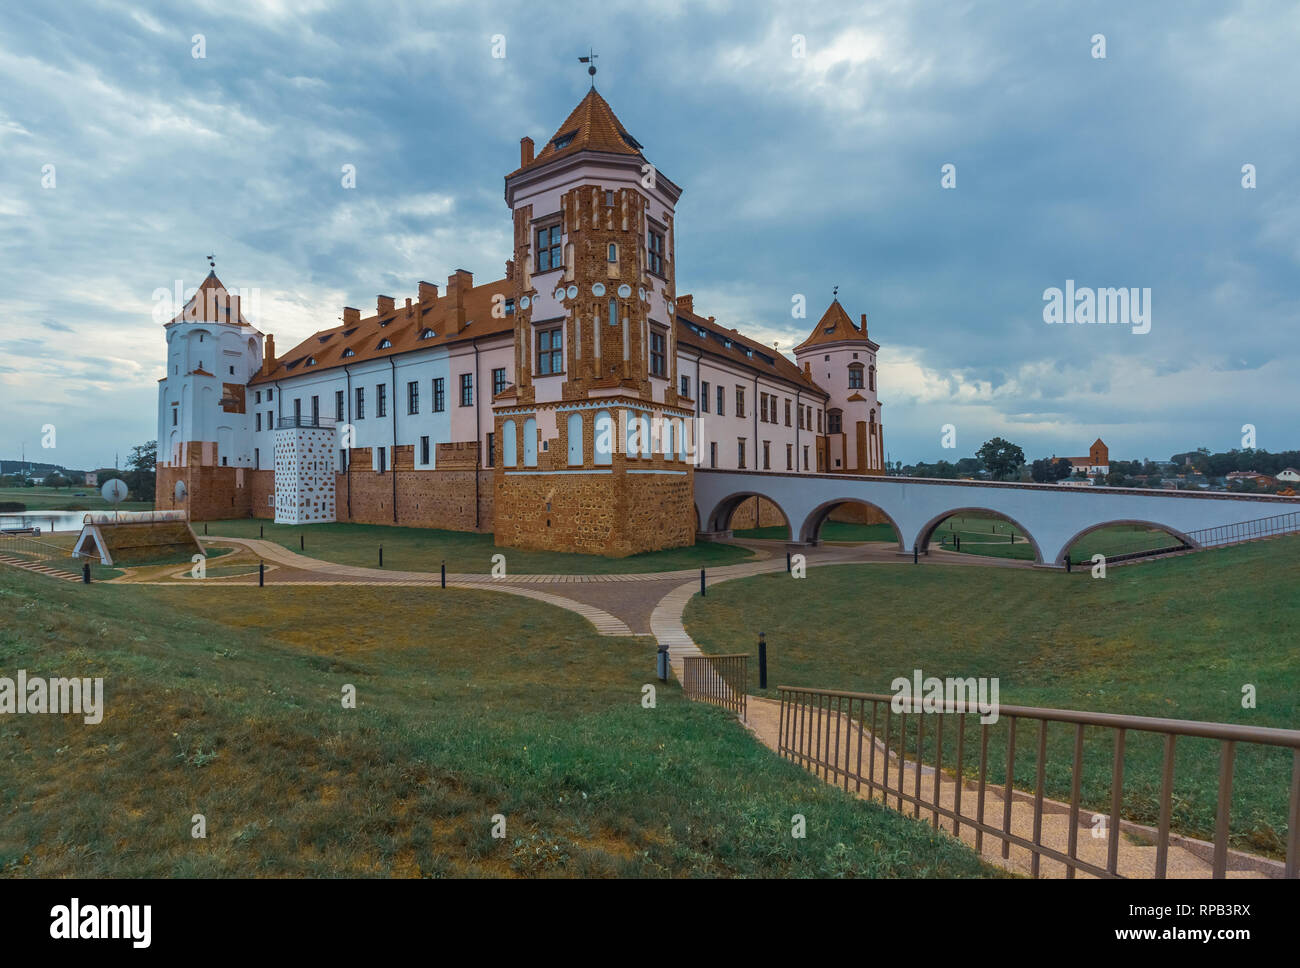 Mir Castle in Belarus cultural heritage and architecture, summer landscape with a cloudy sky - Stock Image